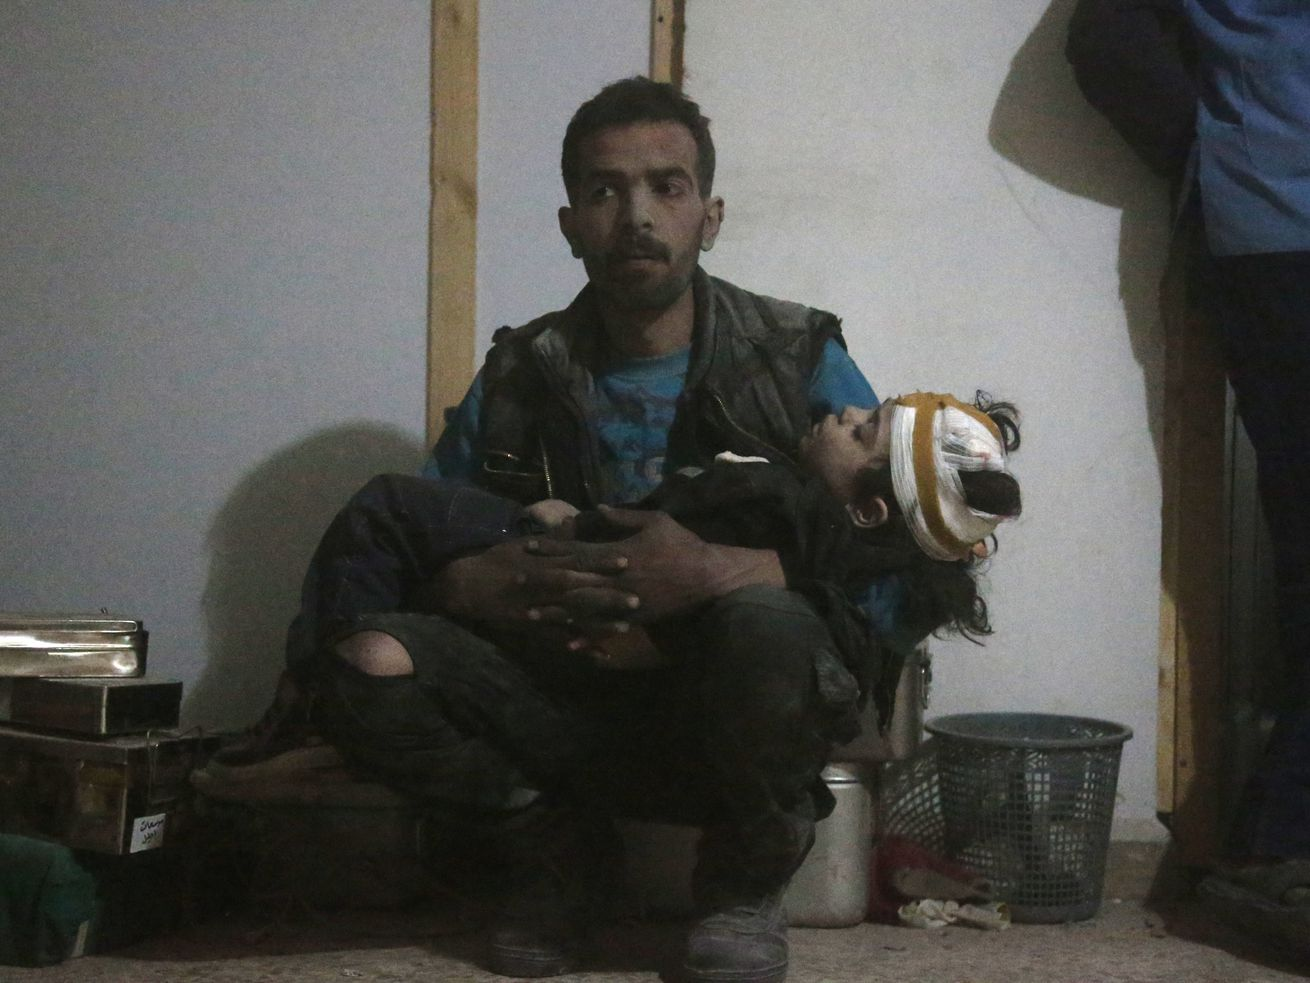 GettyImages_935591600.0 The worsening carnage in Syria, in one grim statistic